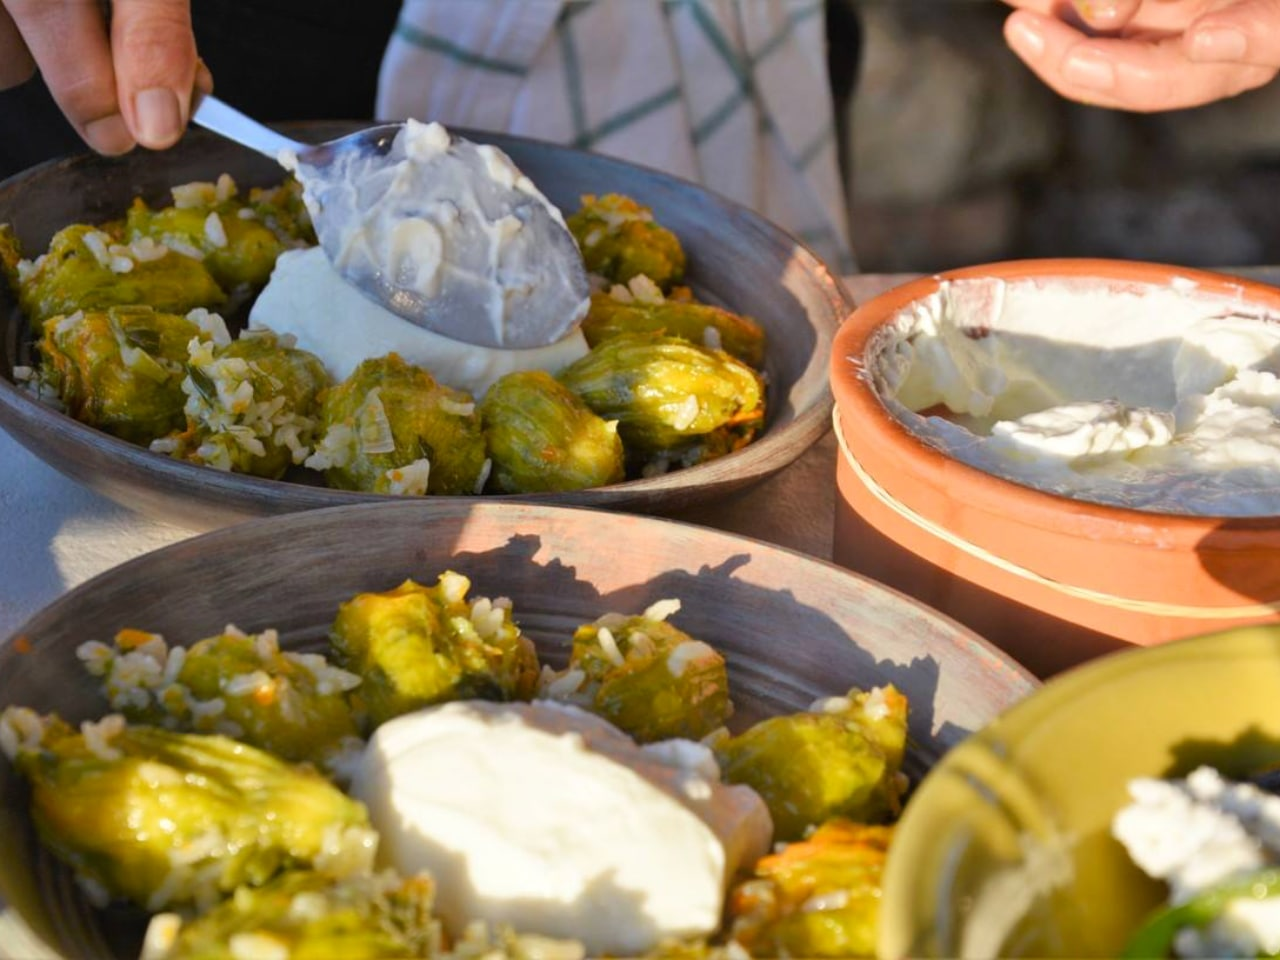 Traditional Greek Cooking Workshop chania crete, Local Ingredients Cooking Cretan Olive Farm chania crete, cooking tour chania crete, activities chania crete, best things to do chania crete